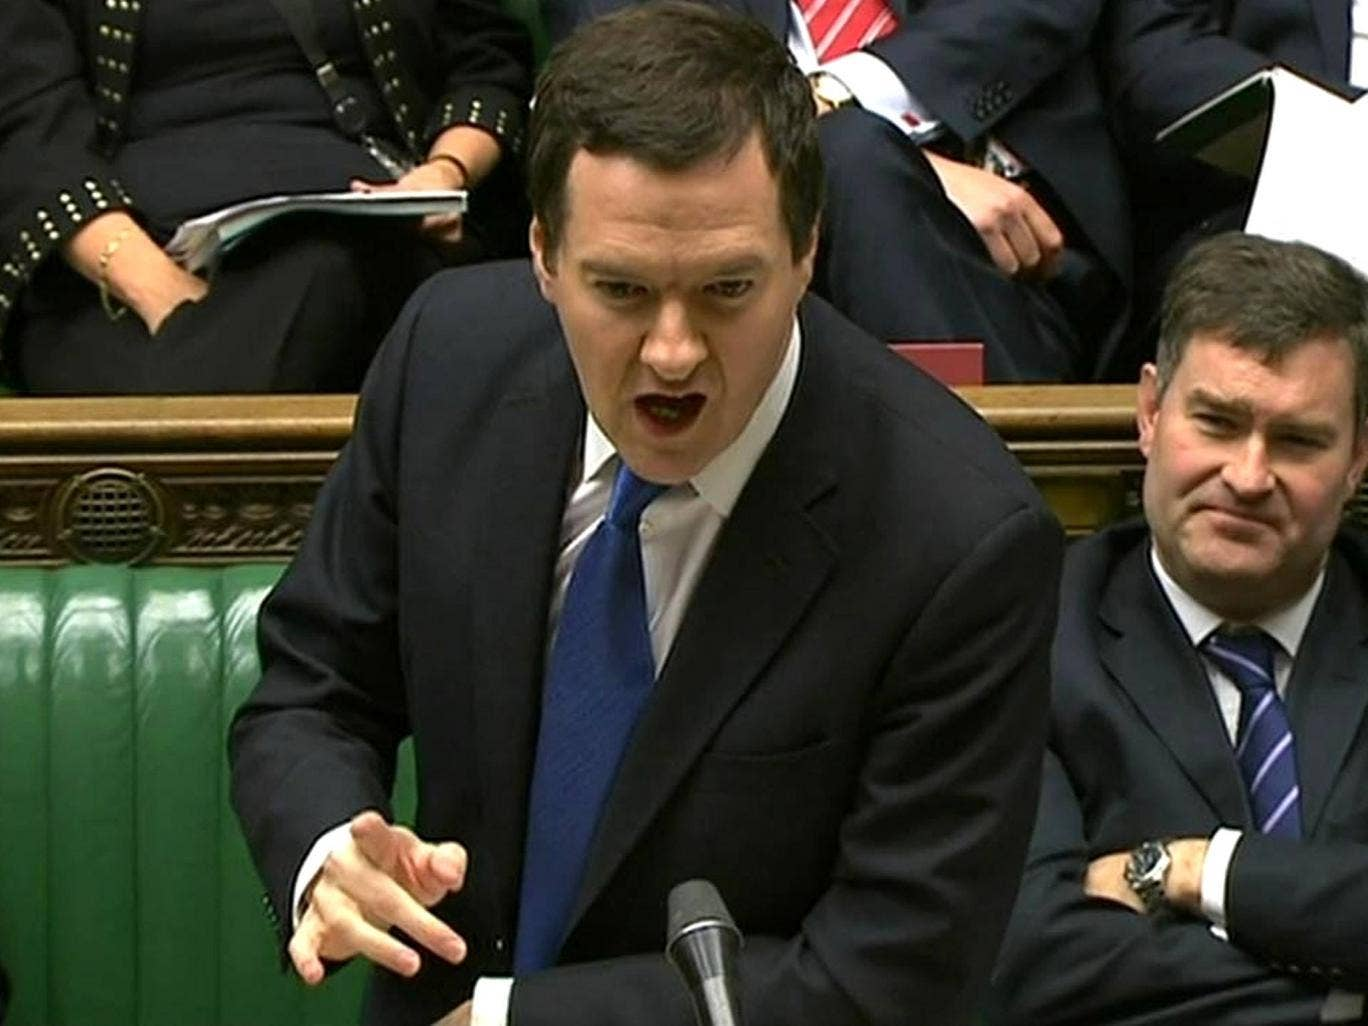 A defiant George Osborne during Treasury Questions in the House of Commons